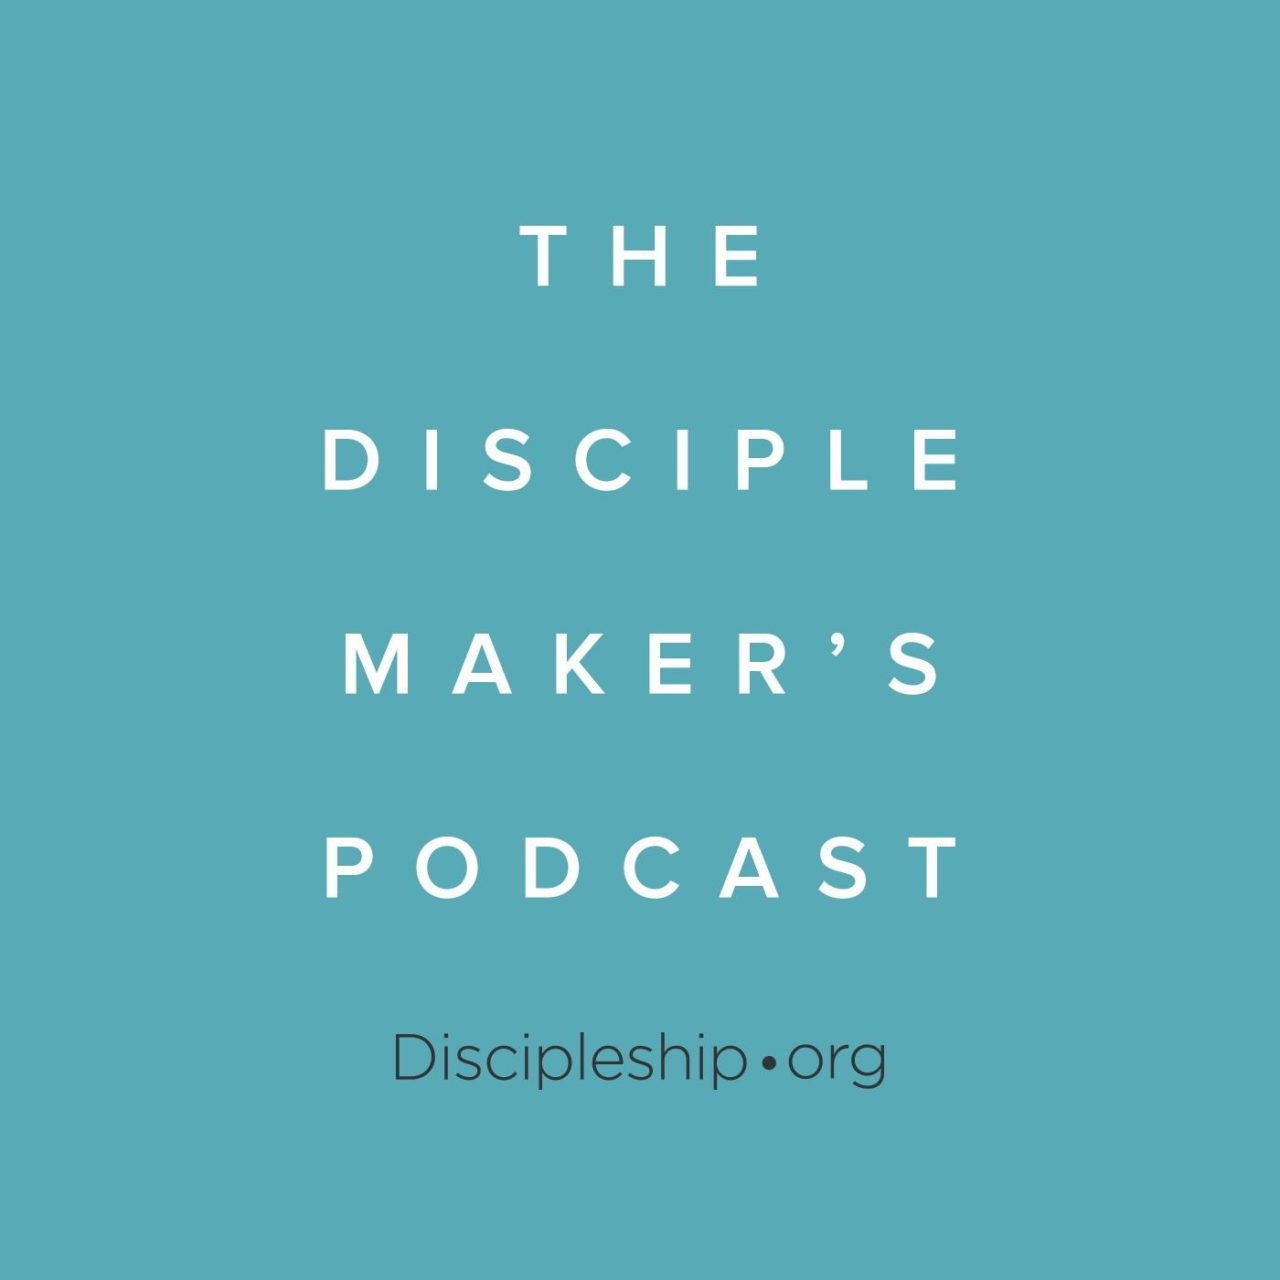 The-Disciple-Maker's-Podcast